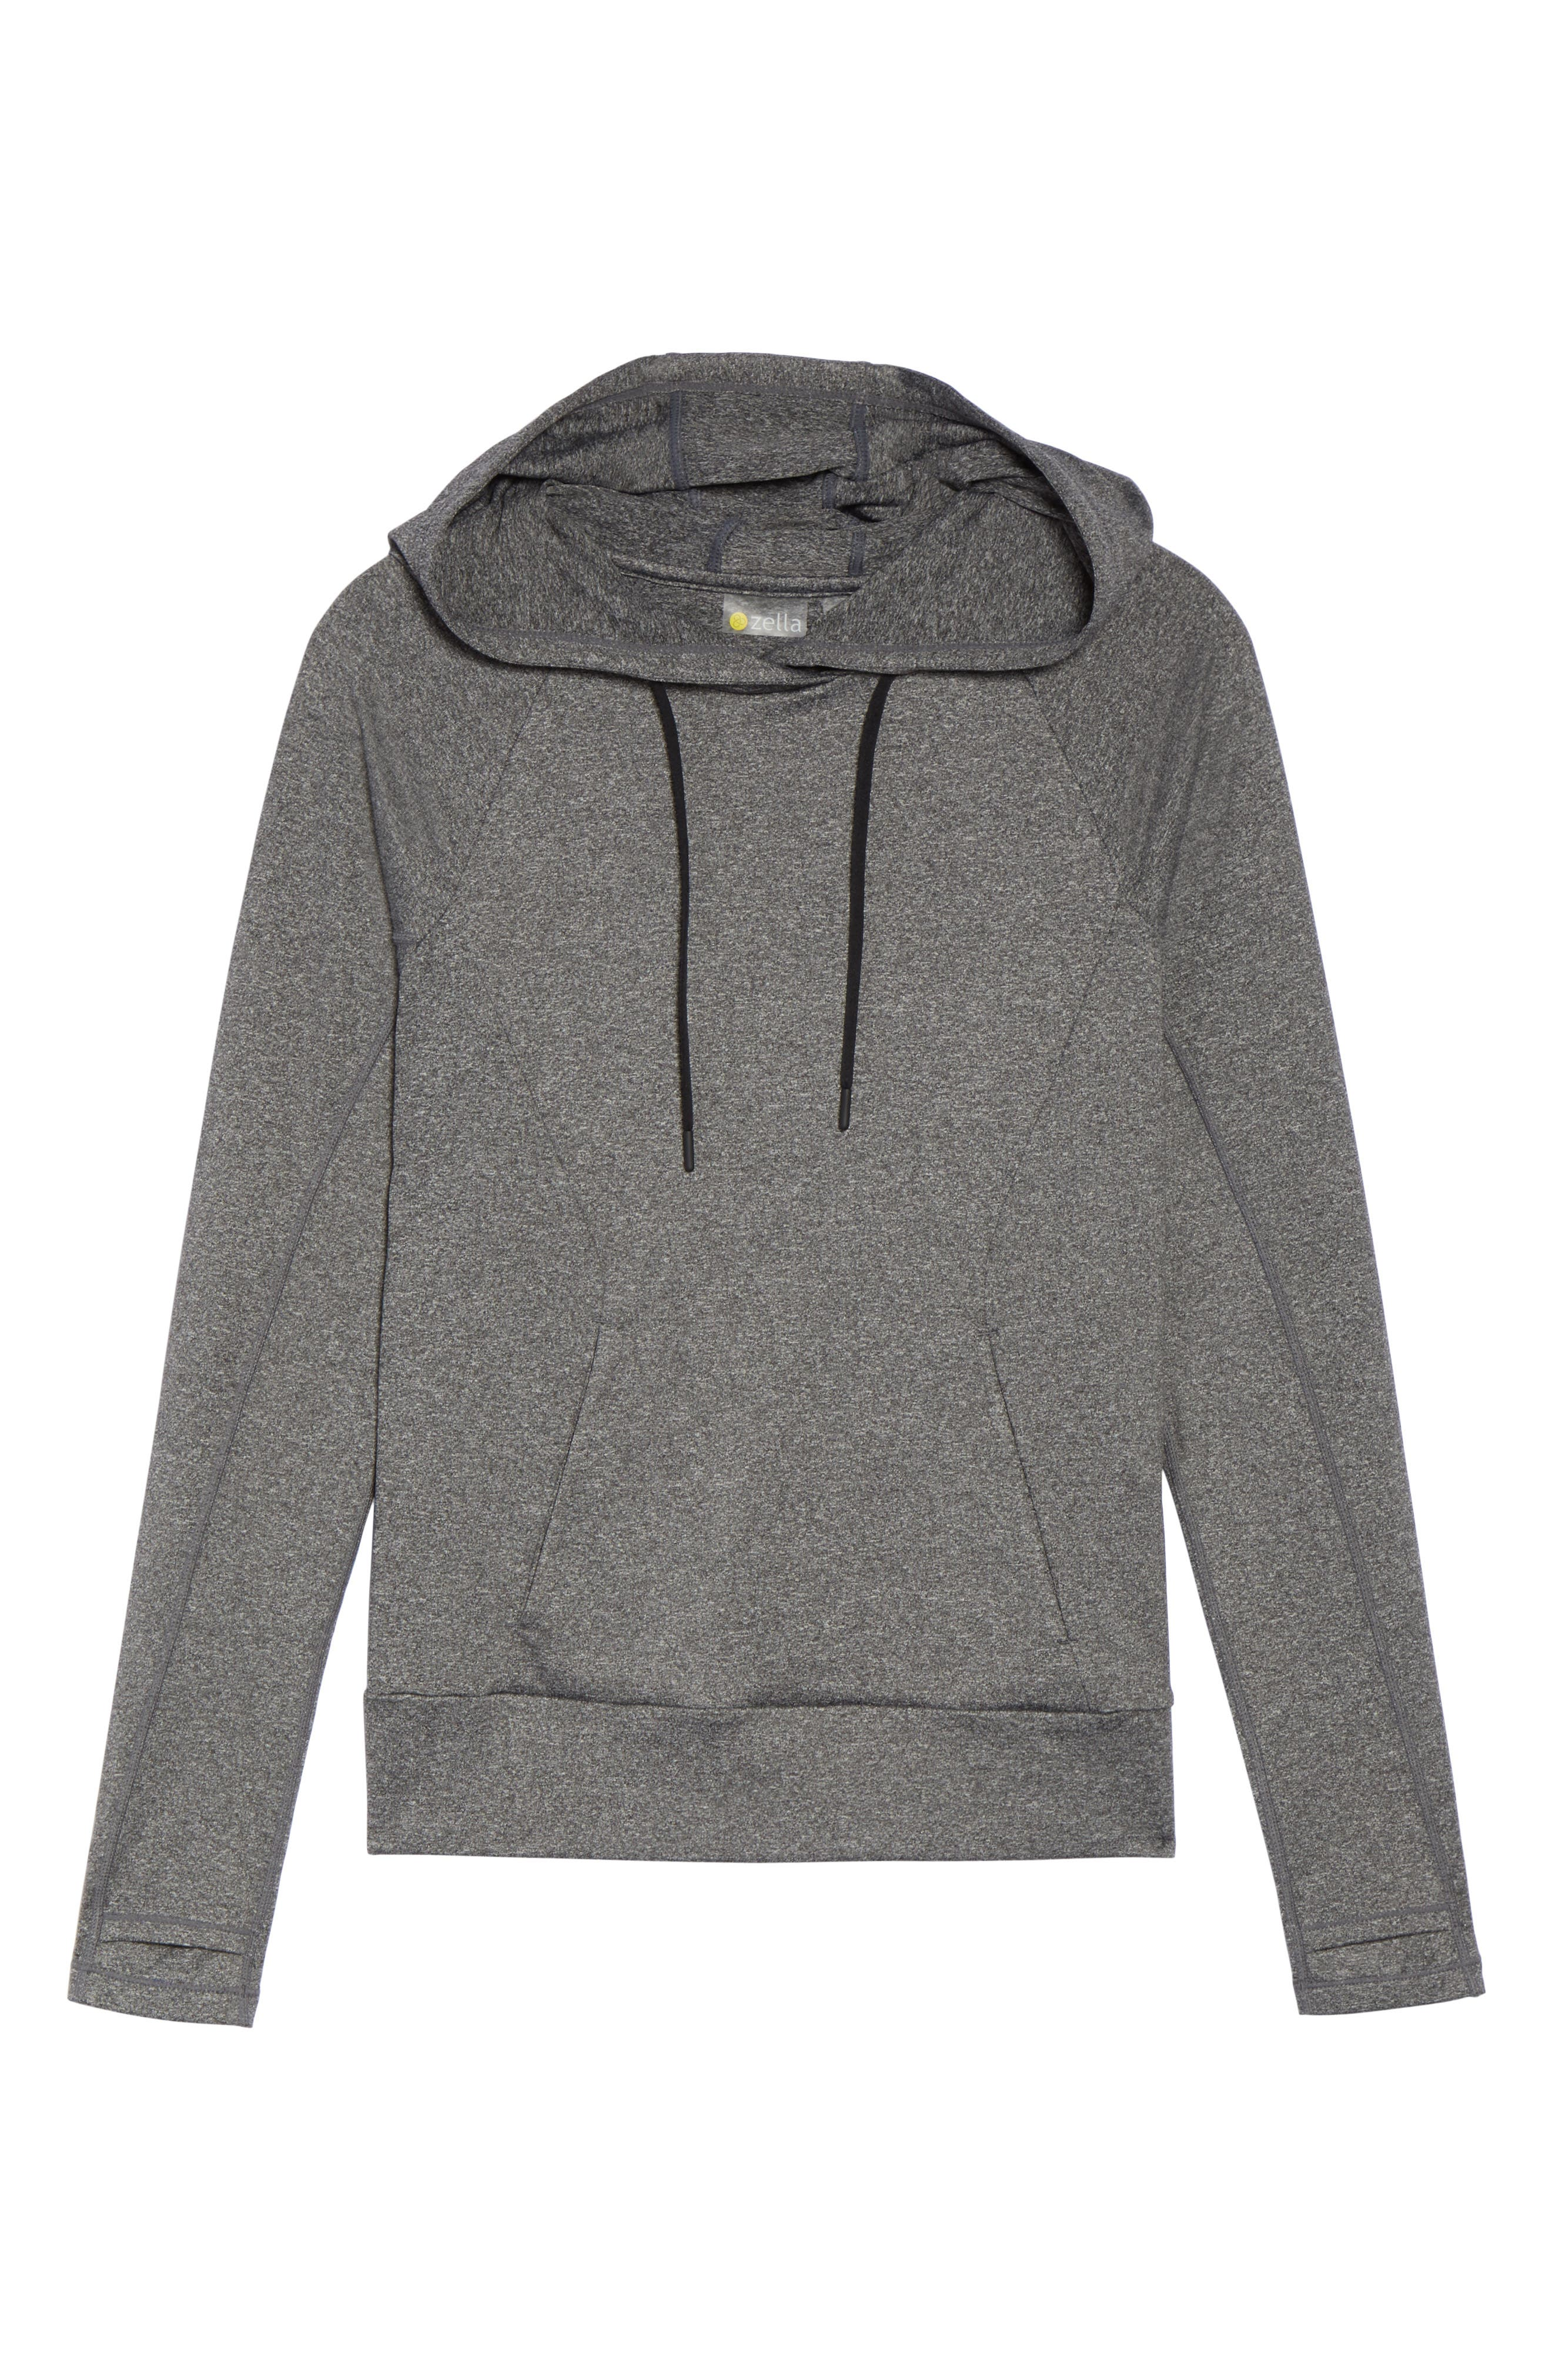 Like a Girl Hoodie,                             Alternate thumbnail 7, color,                             021